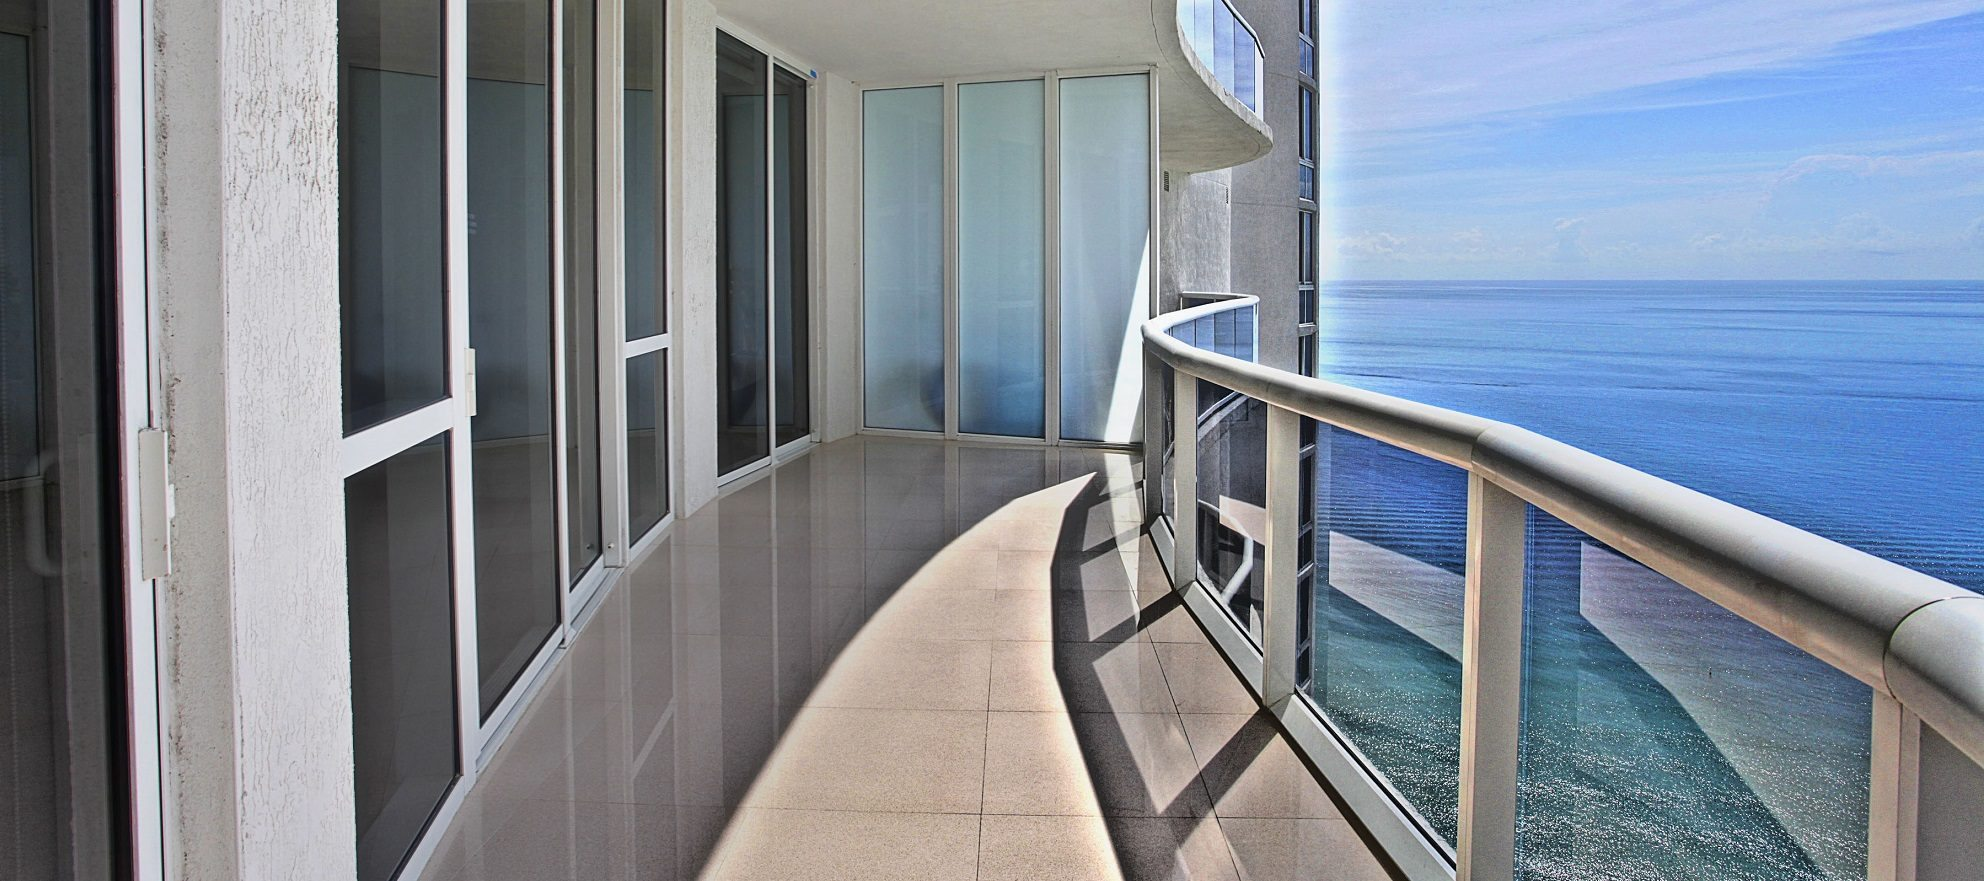 Luxury listing: Resort style living on the water